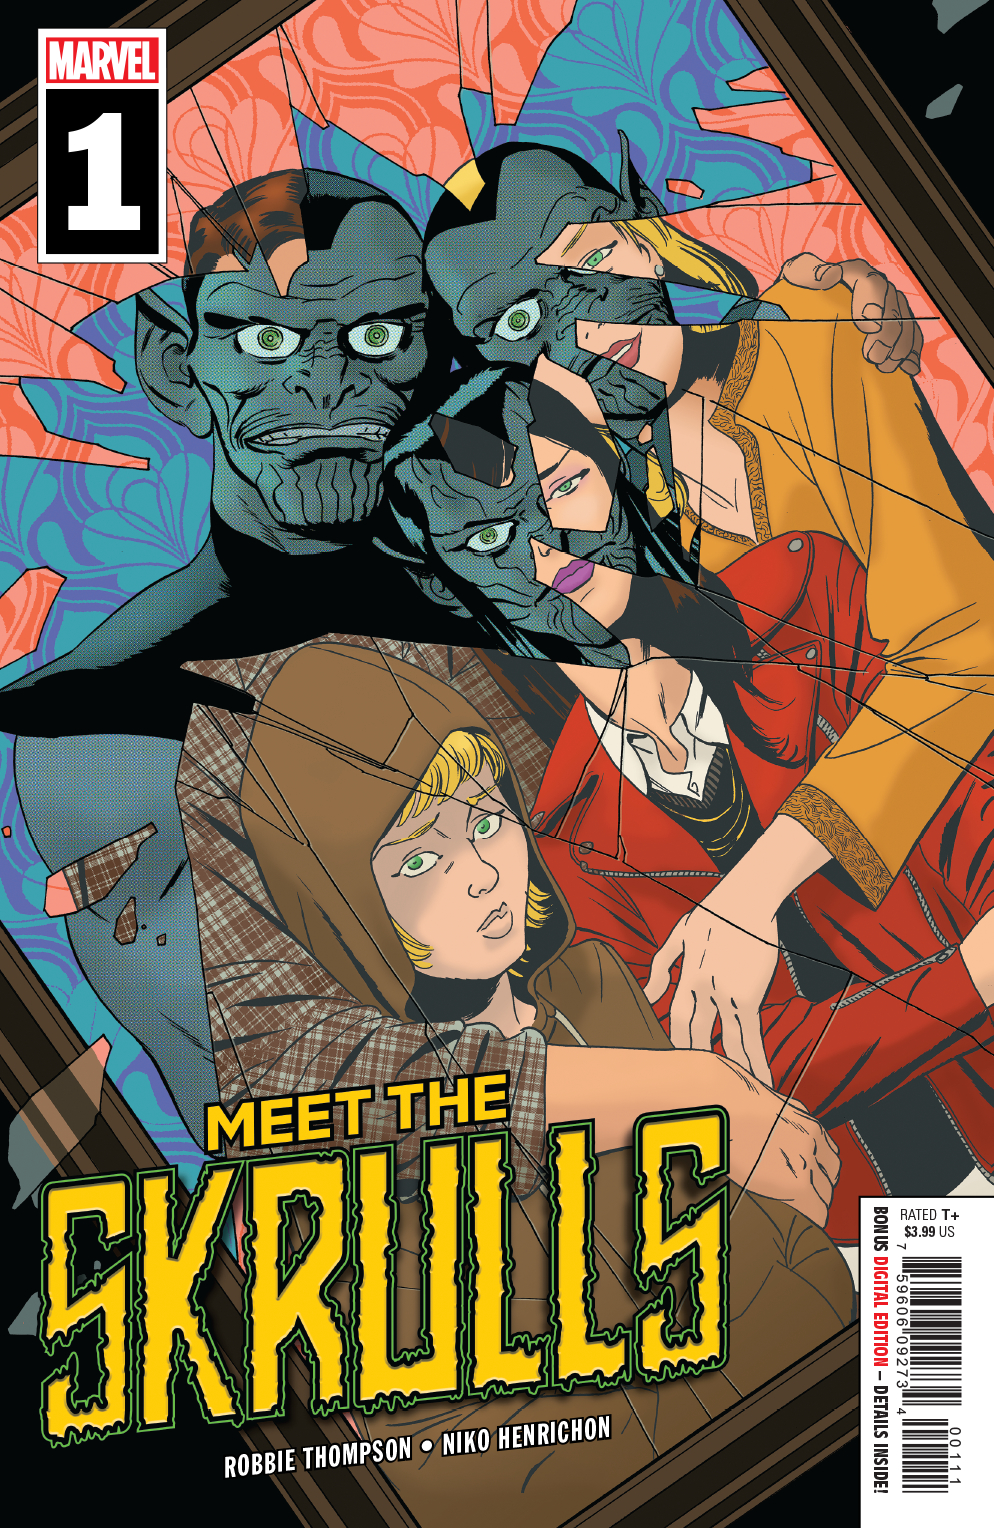 Meet the Skrulls #1  is out as of 3/6/2019.